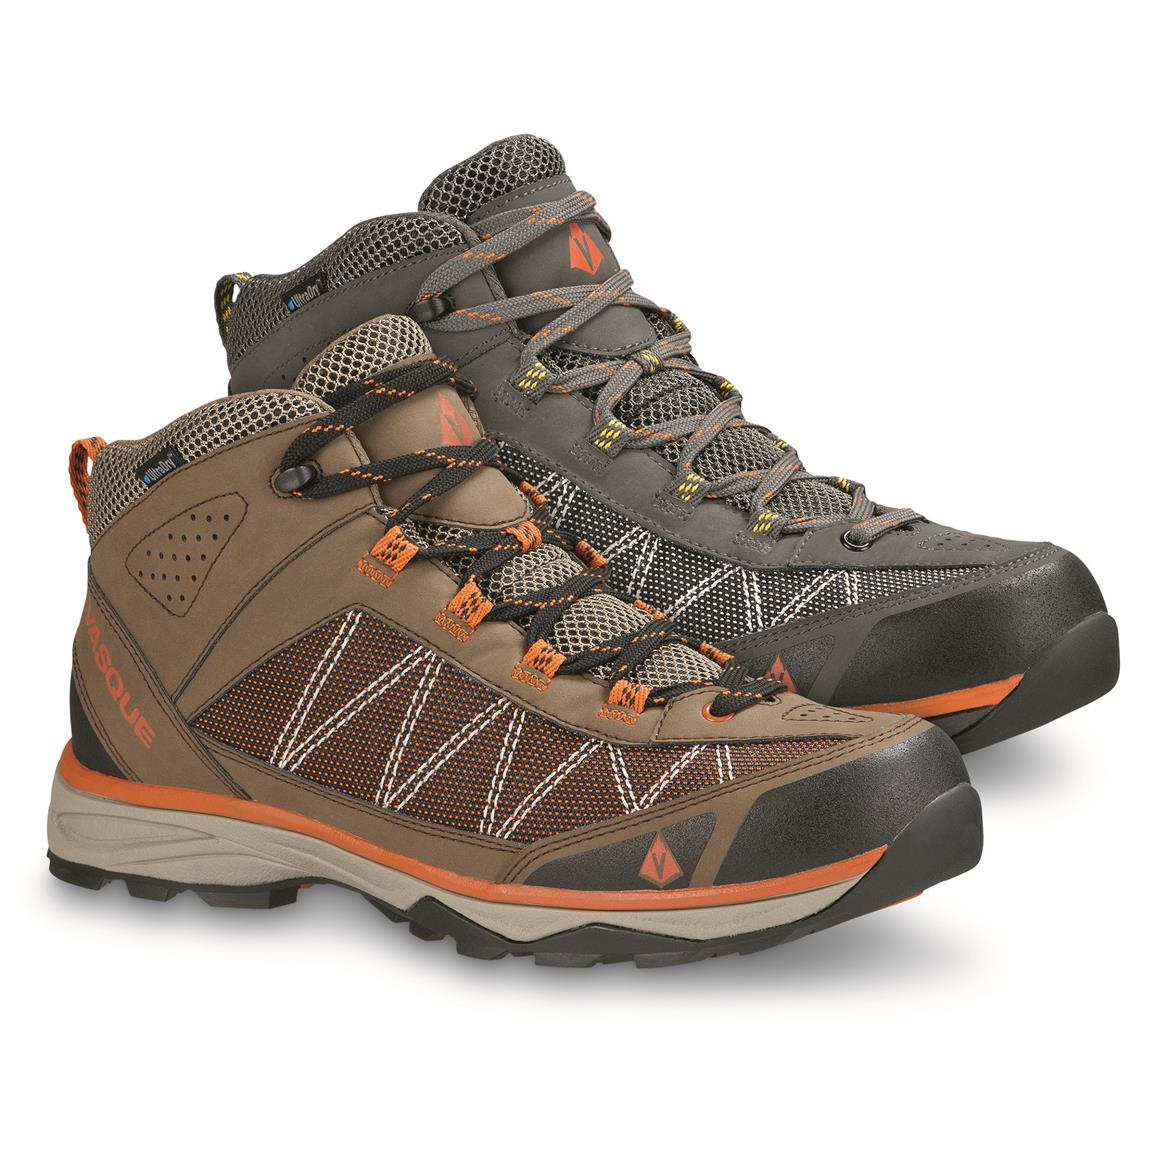 Vasque Men's Monolith UltraDry Waterproof Hiking Boots